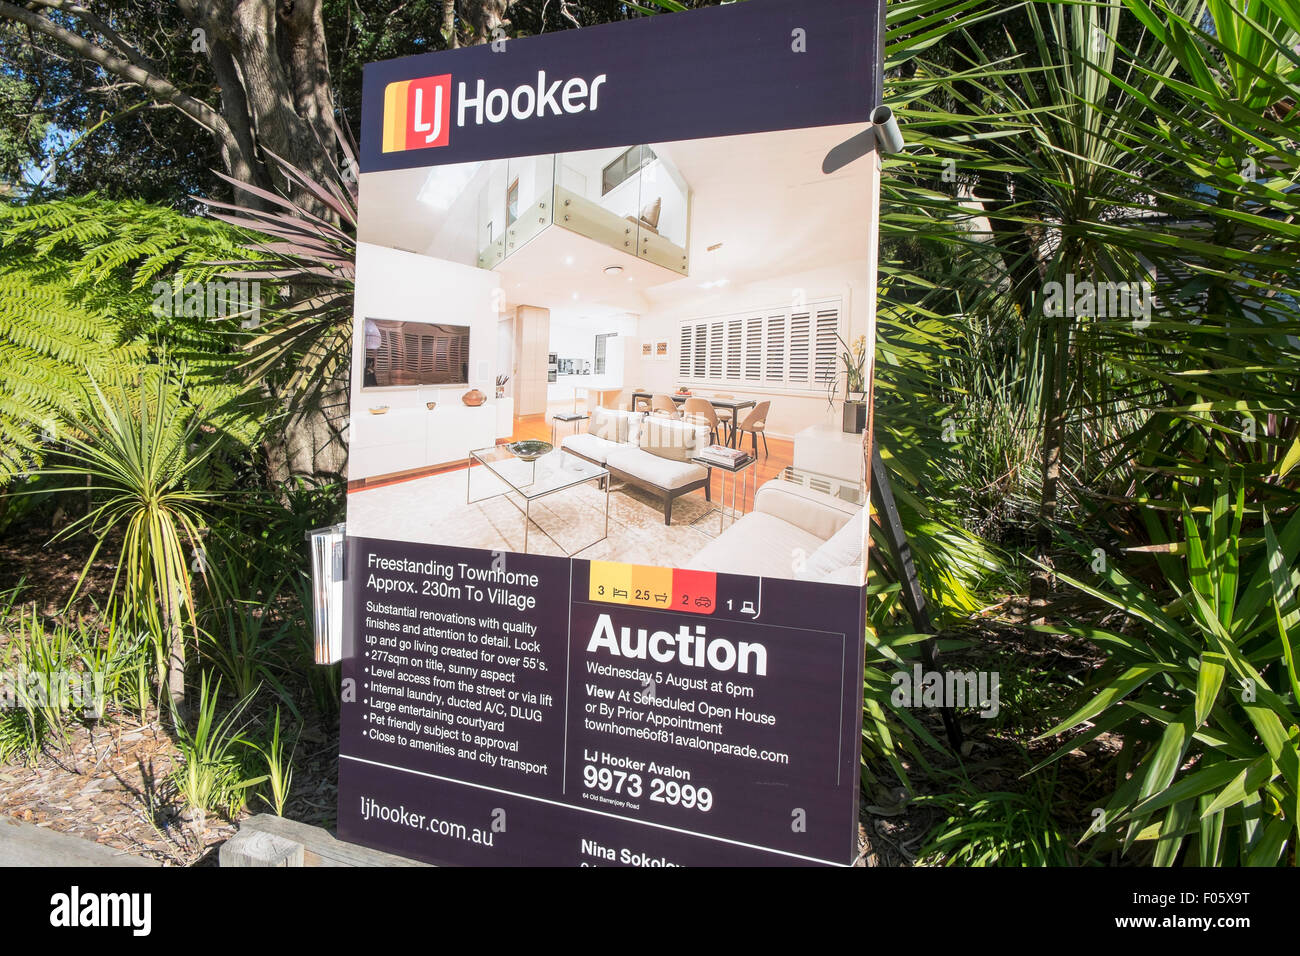 Home To Go Australia Sydney Australia Real Estate House Home Marketed By Real Estate